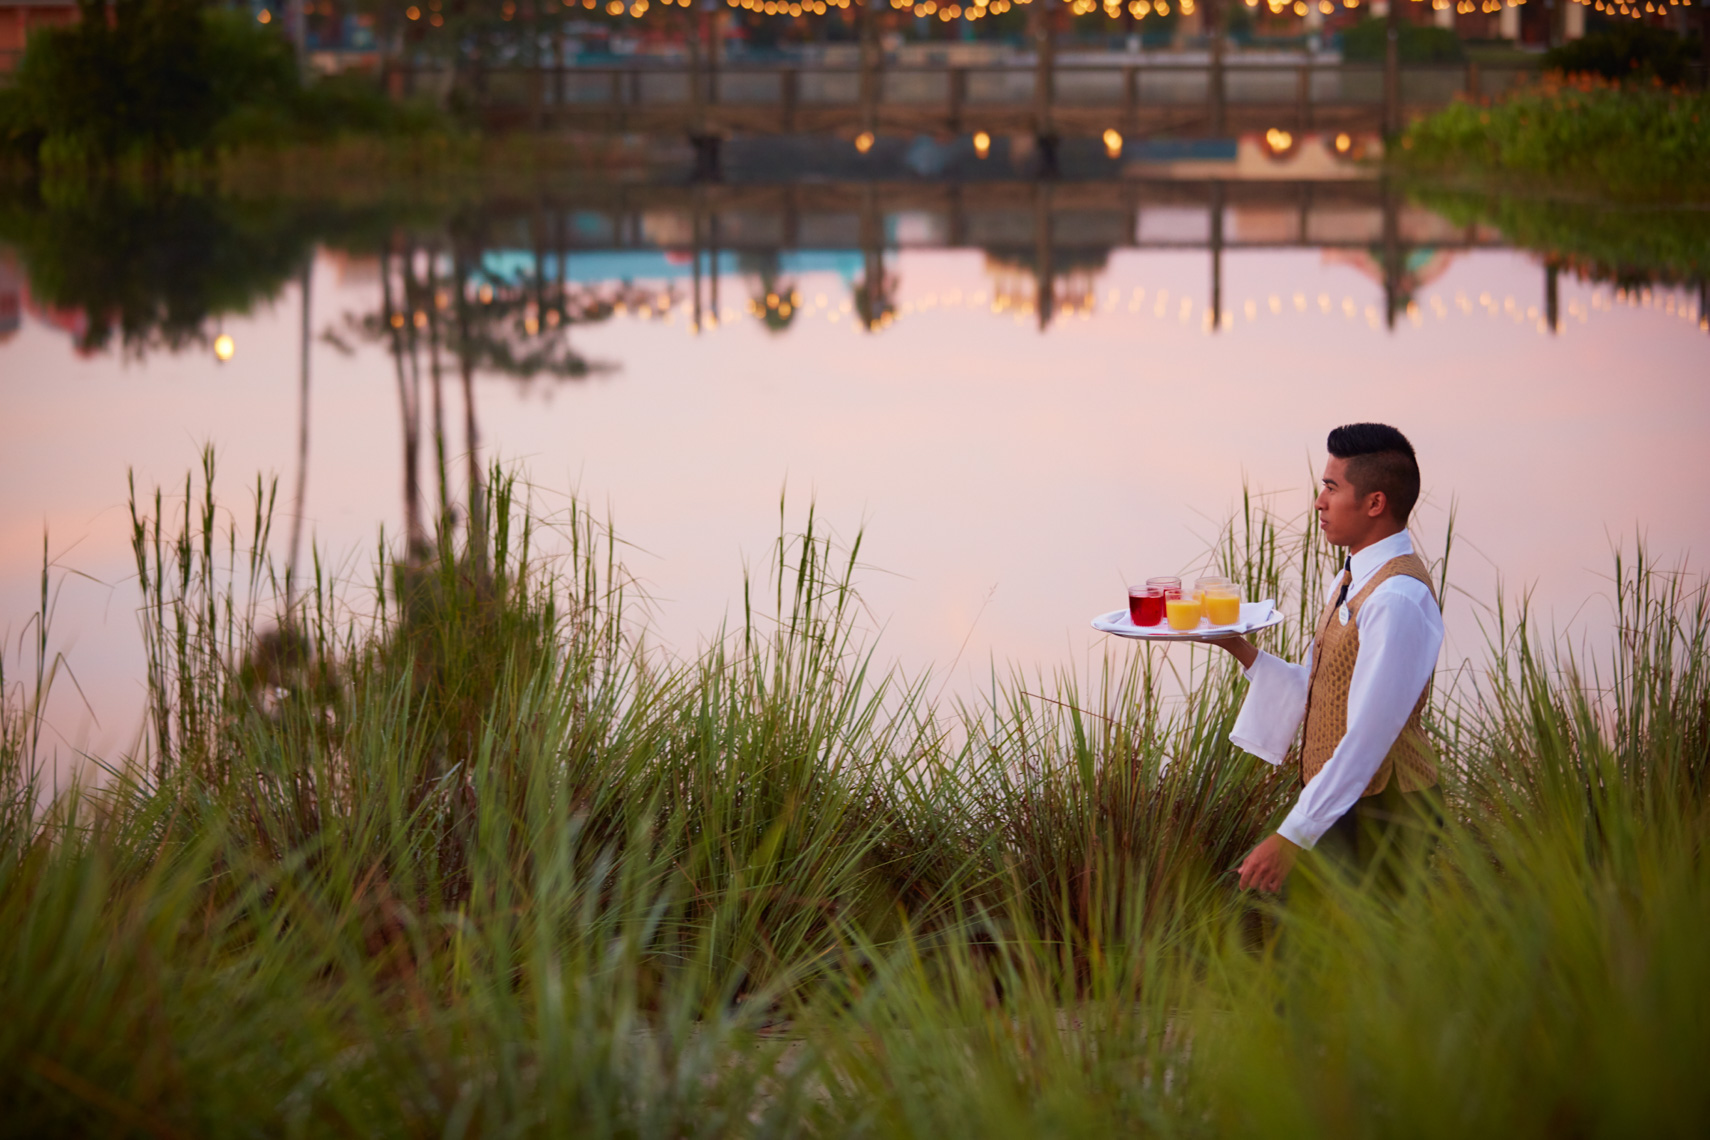 Waiter in white shirt carrying food tray along garden path at dusk by the lagoon